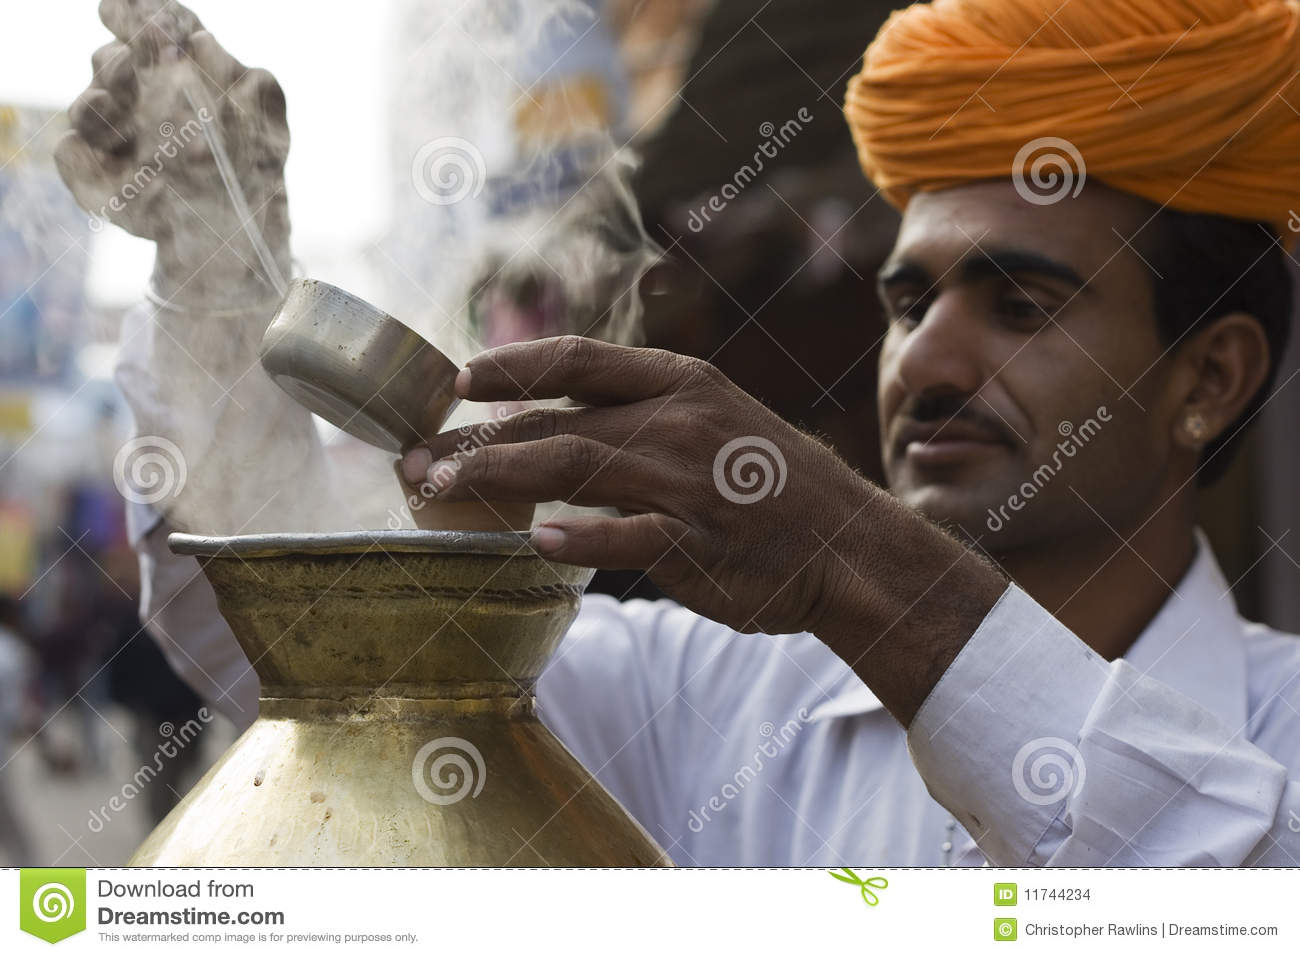 Indian Chai Worker pouring some Tea